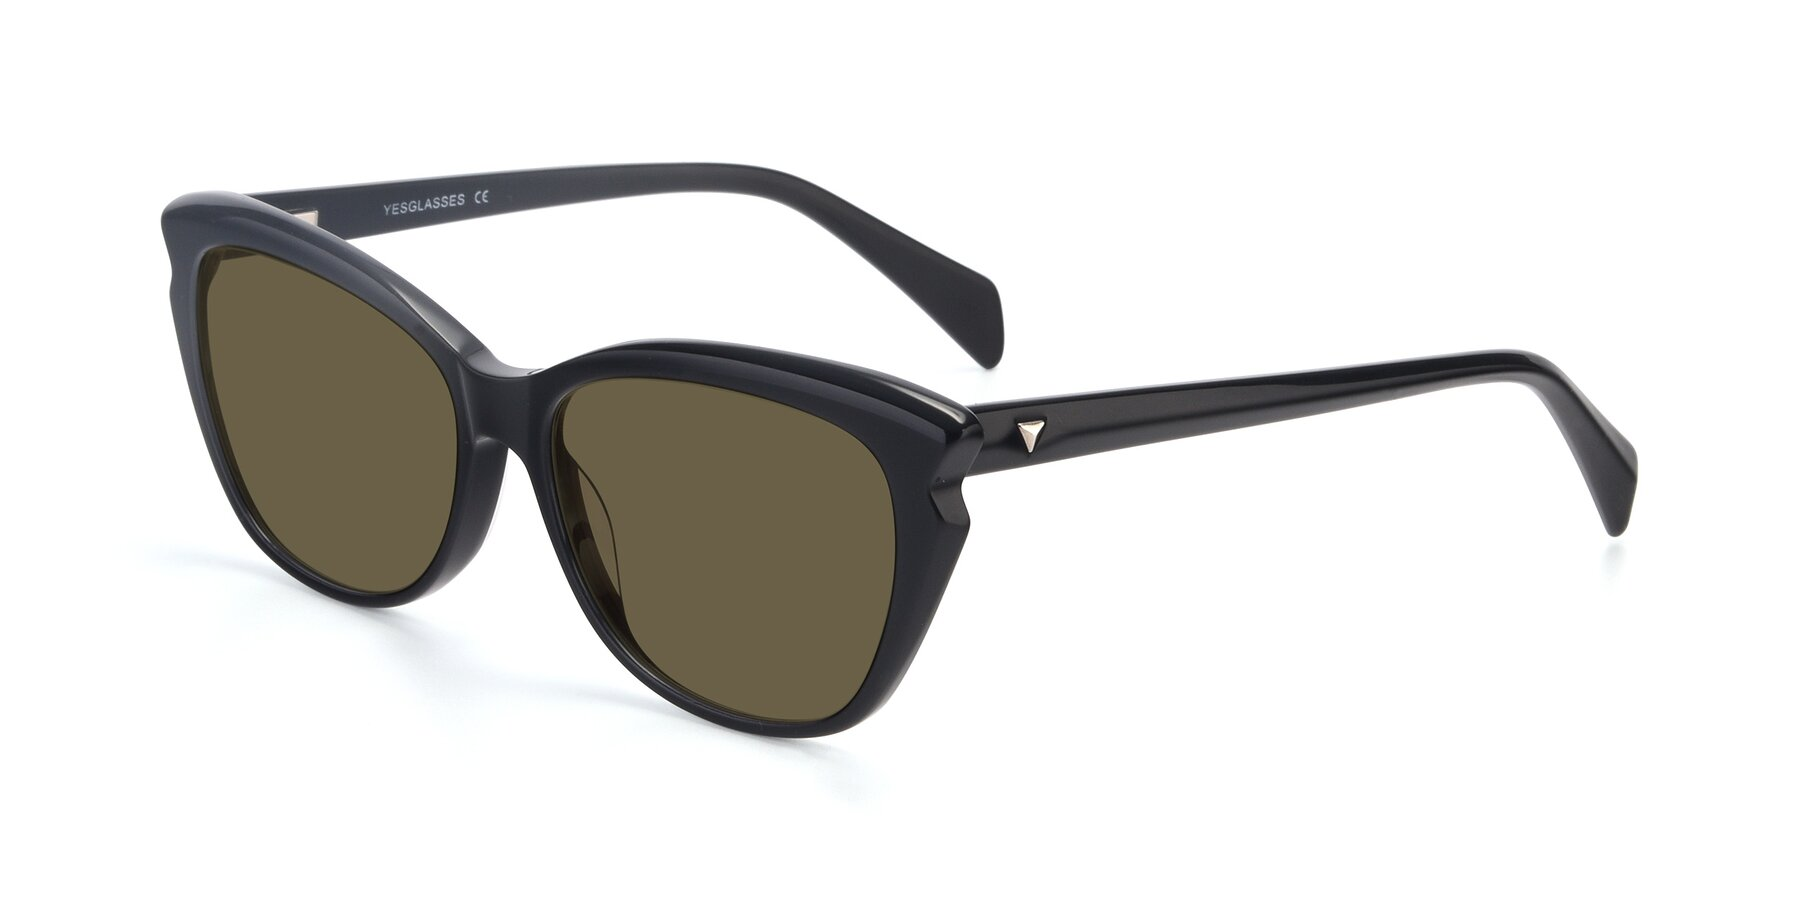 Angle of 17629 in Black with Brown Polarized Lenses